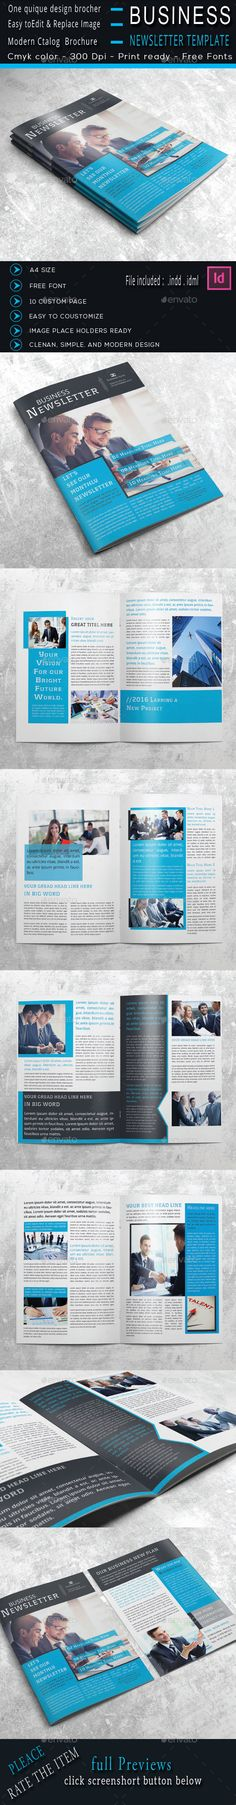 Business Newsletter Indesign Template - Newsletters Print Templates Download here : https://graphicriver.net/item/business-newsletter-indesign-template/14331151?s_rank=22&ref=Al-fatih